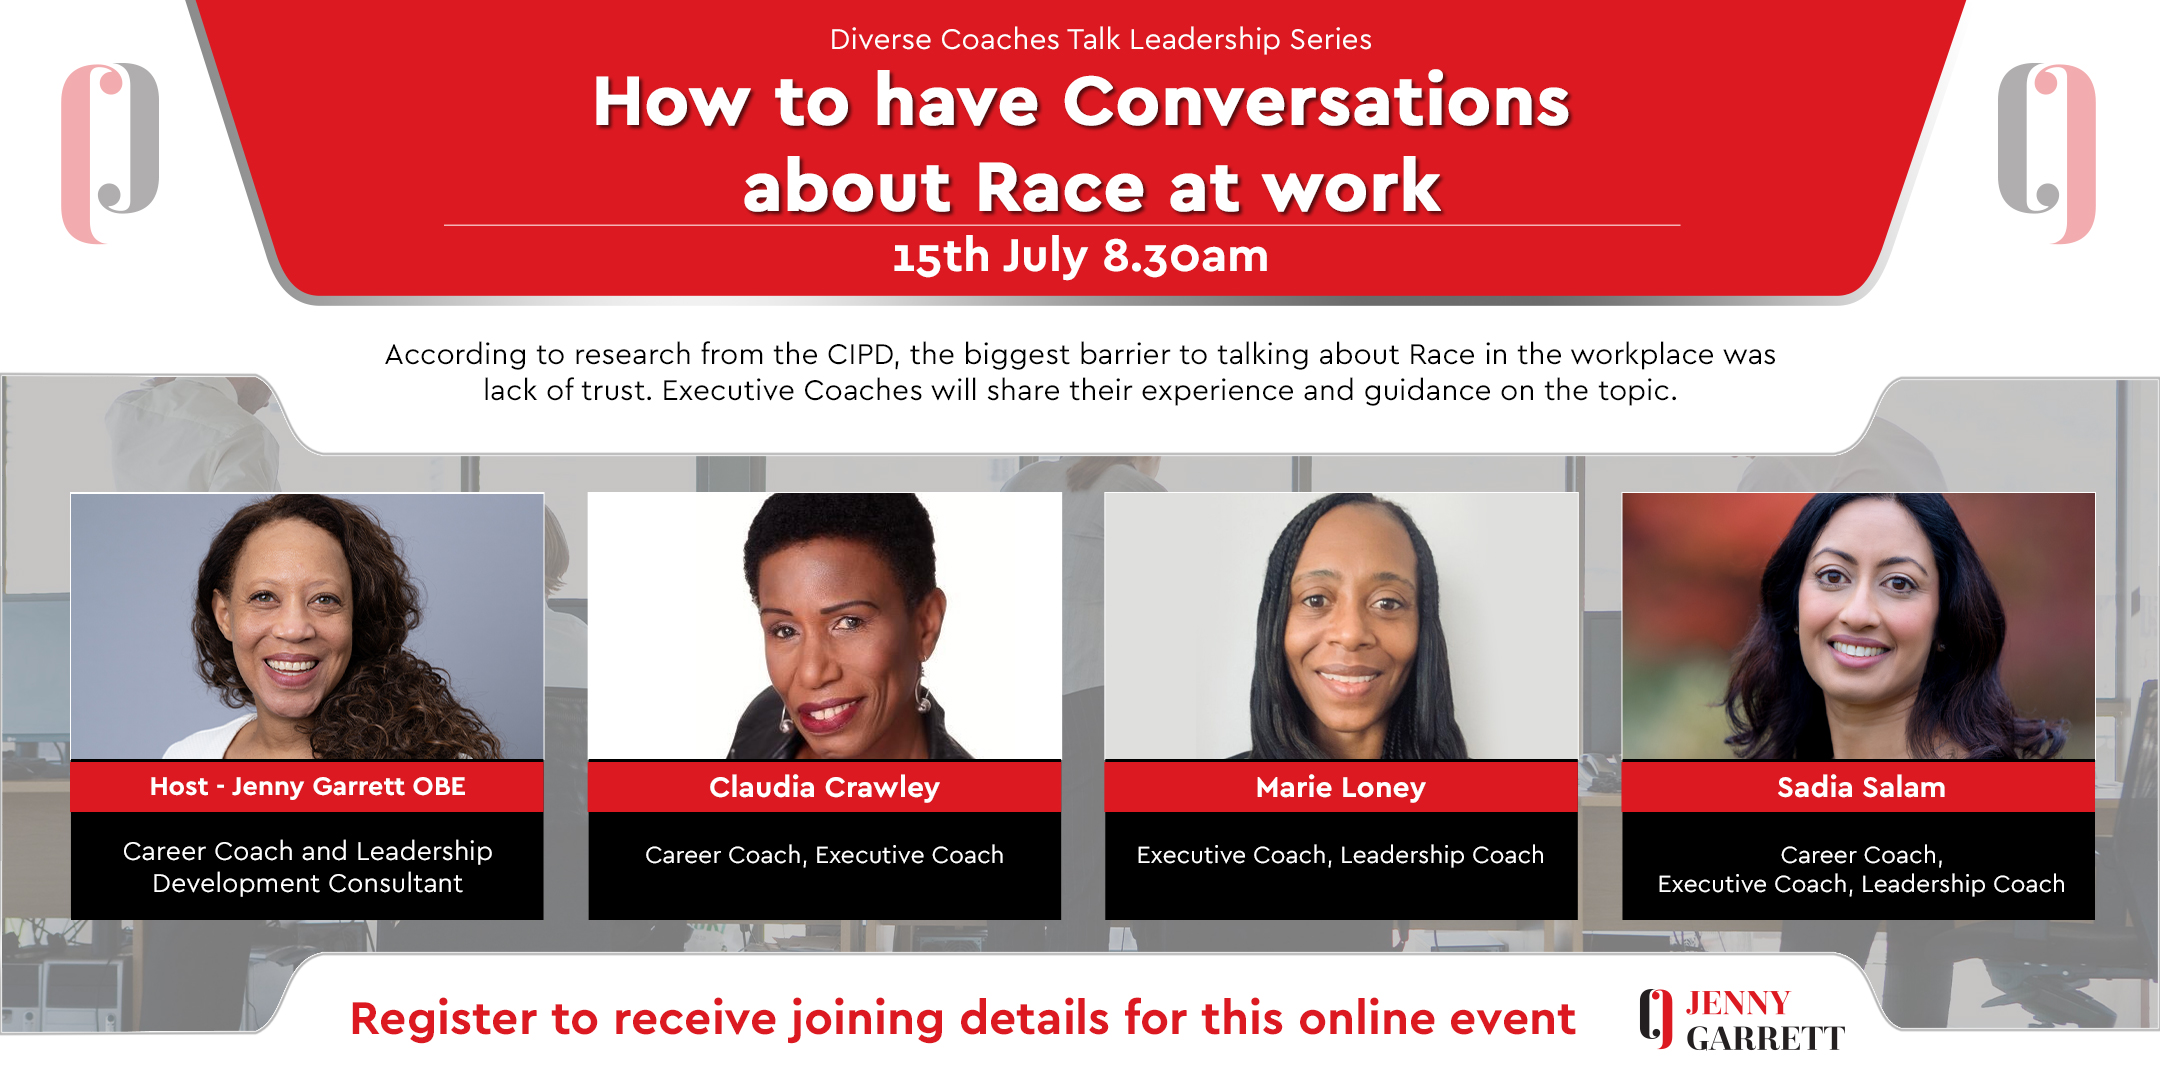 How to have Conversations about Race at work